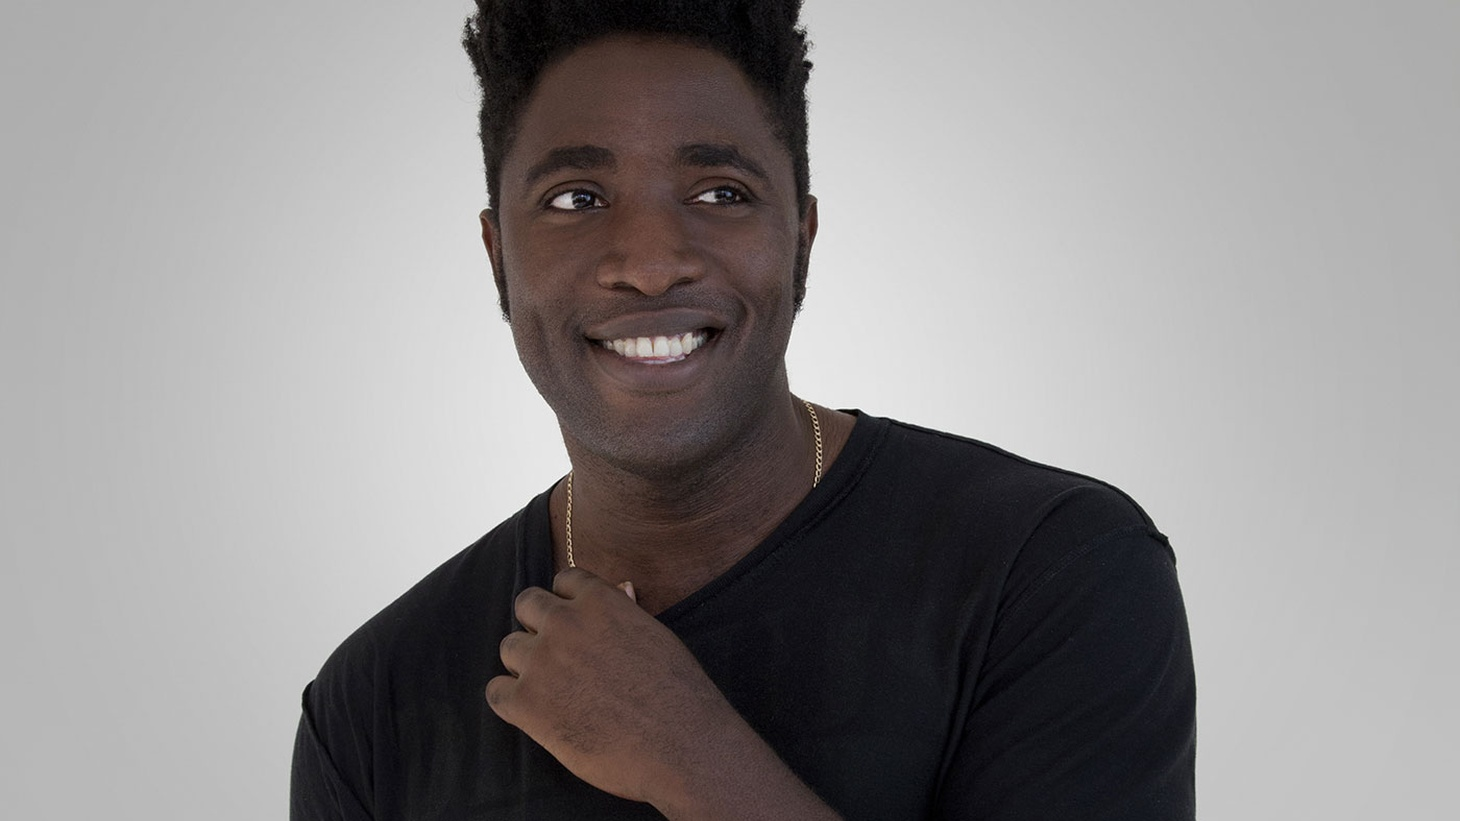 Kele Okereke, the frontman for Bloc Party, pursues his own electronica sound on the solo project bearing his name.